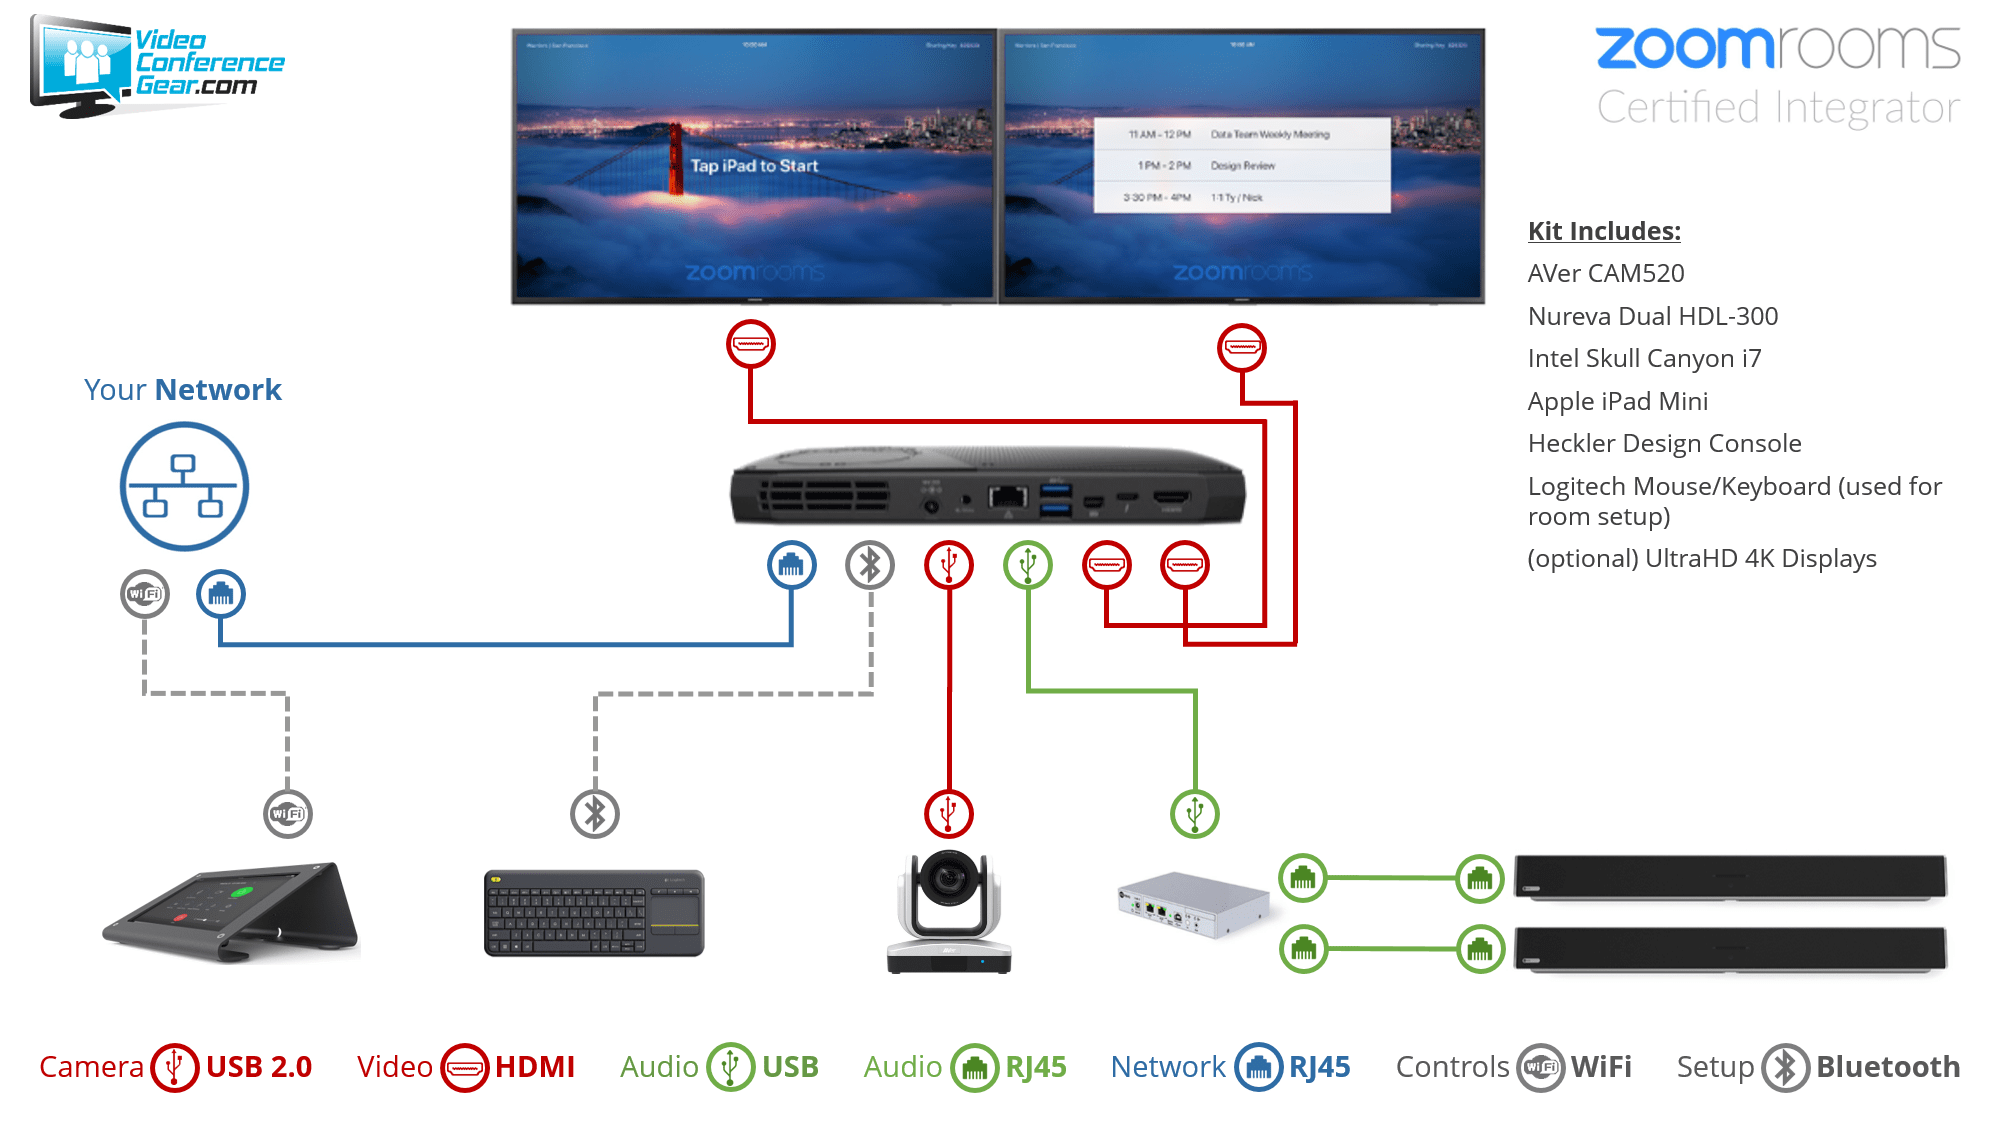 Zoom Rooms Kit from Video Conference Gear featuring the AVer CAM520 and Nureva Dual HDL300